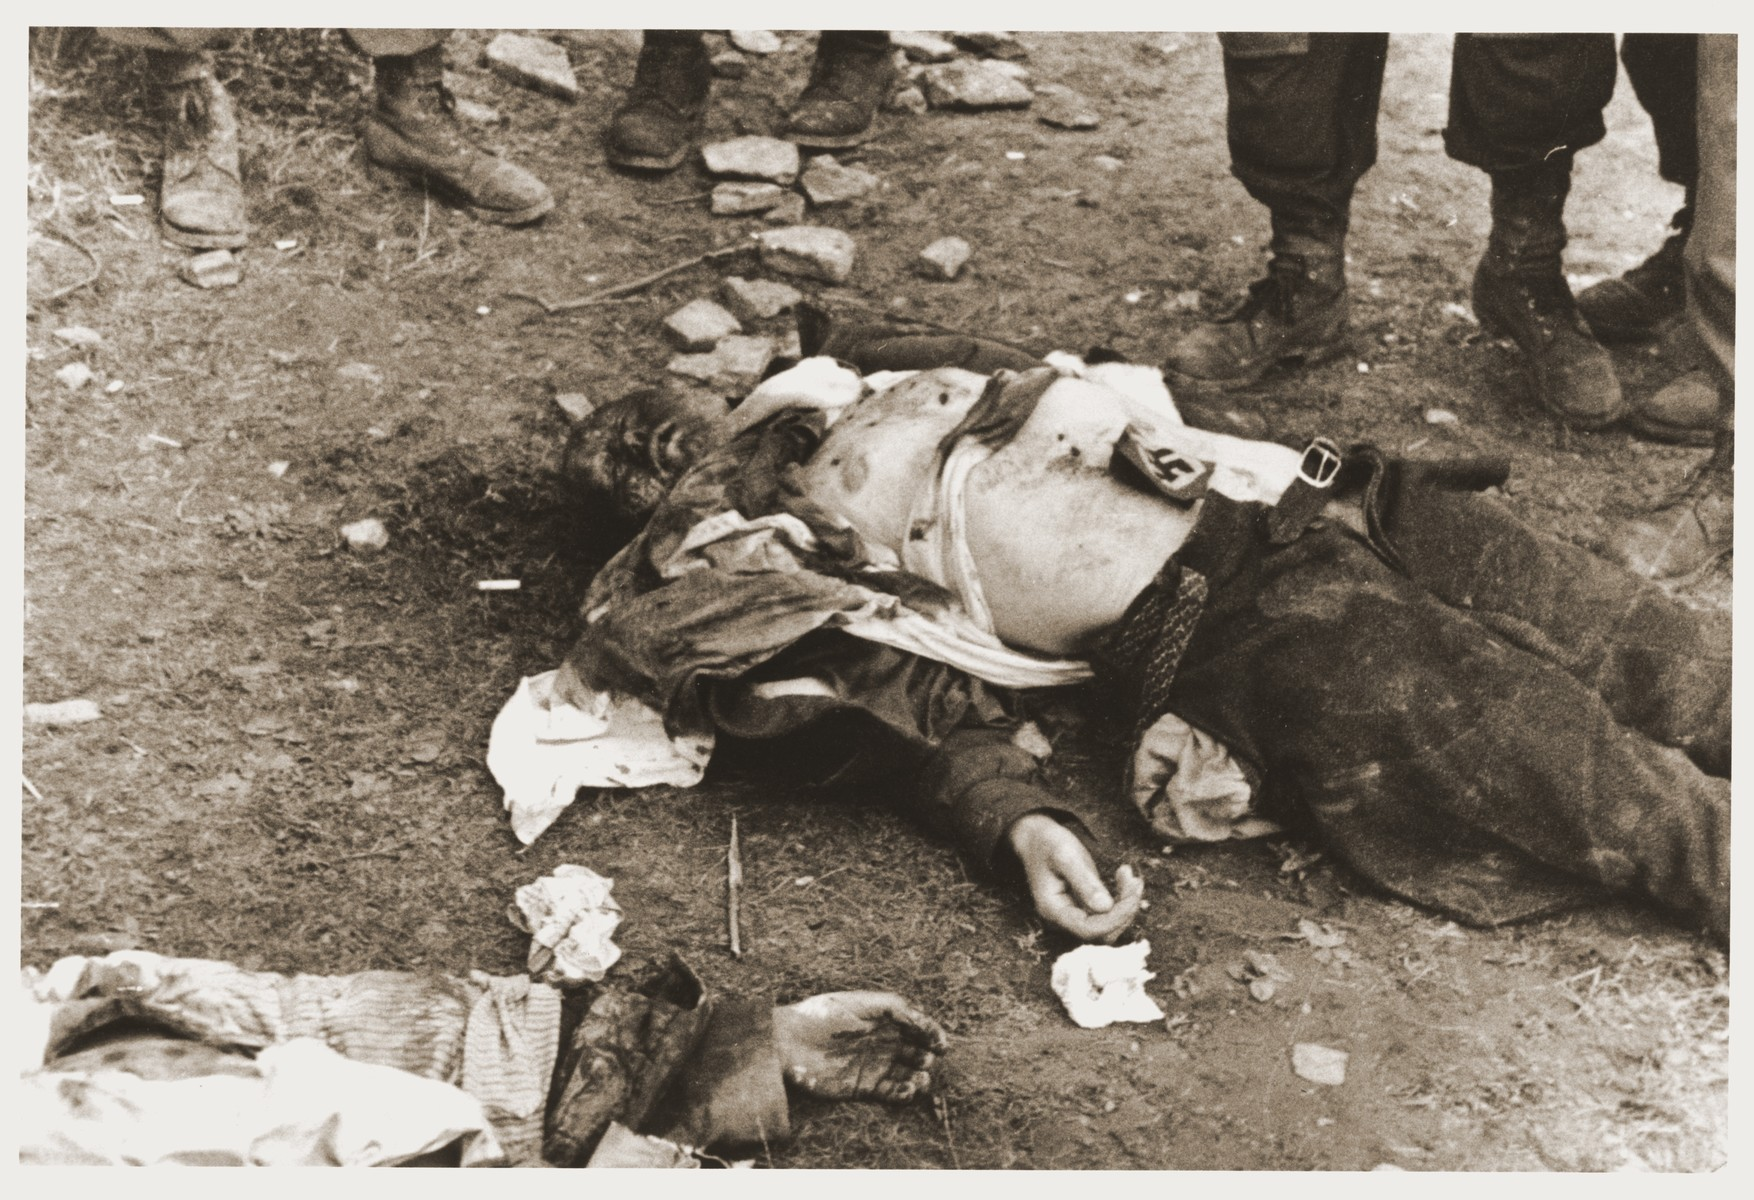 The corpse of a German guard with a swastika on his chest, who was killed by inmates during the liberation of Ohrdruf.    The photographer was an American soldier serving in the 69th Infantry Division, which participated in the liberation of Ohrdruf.